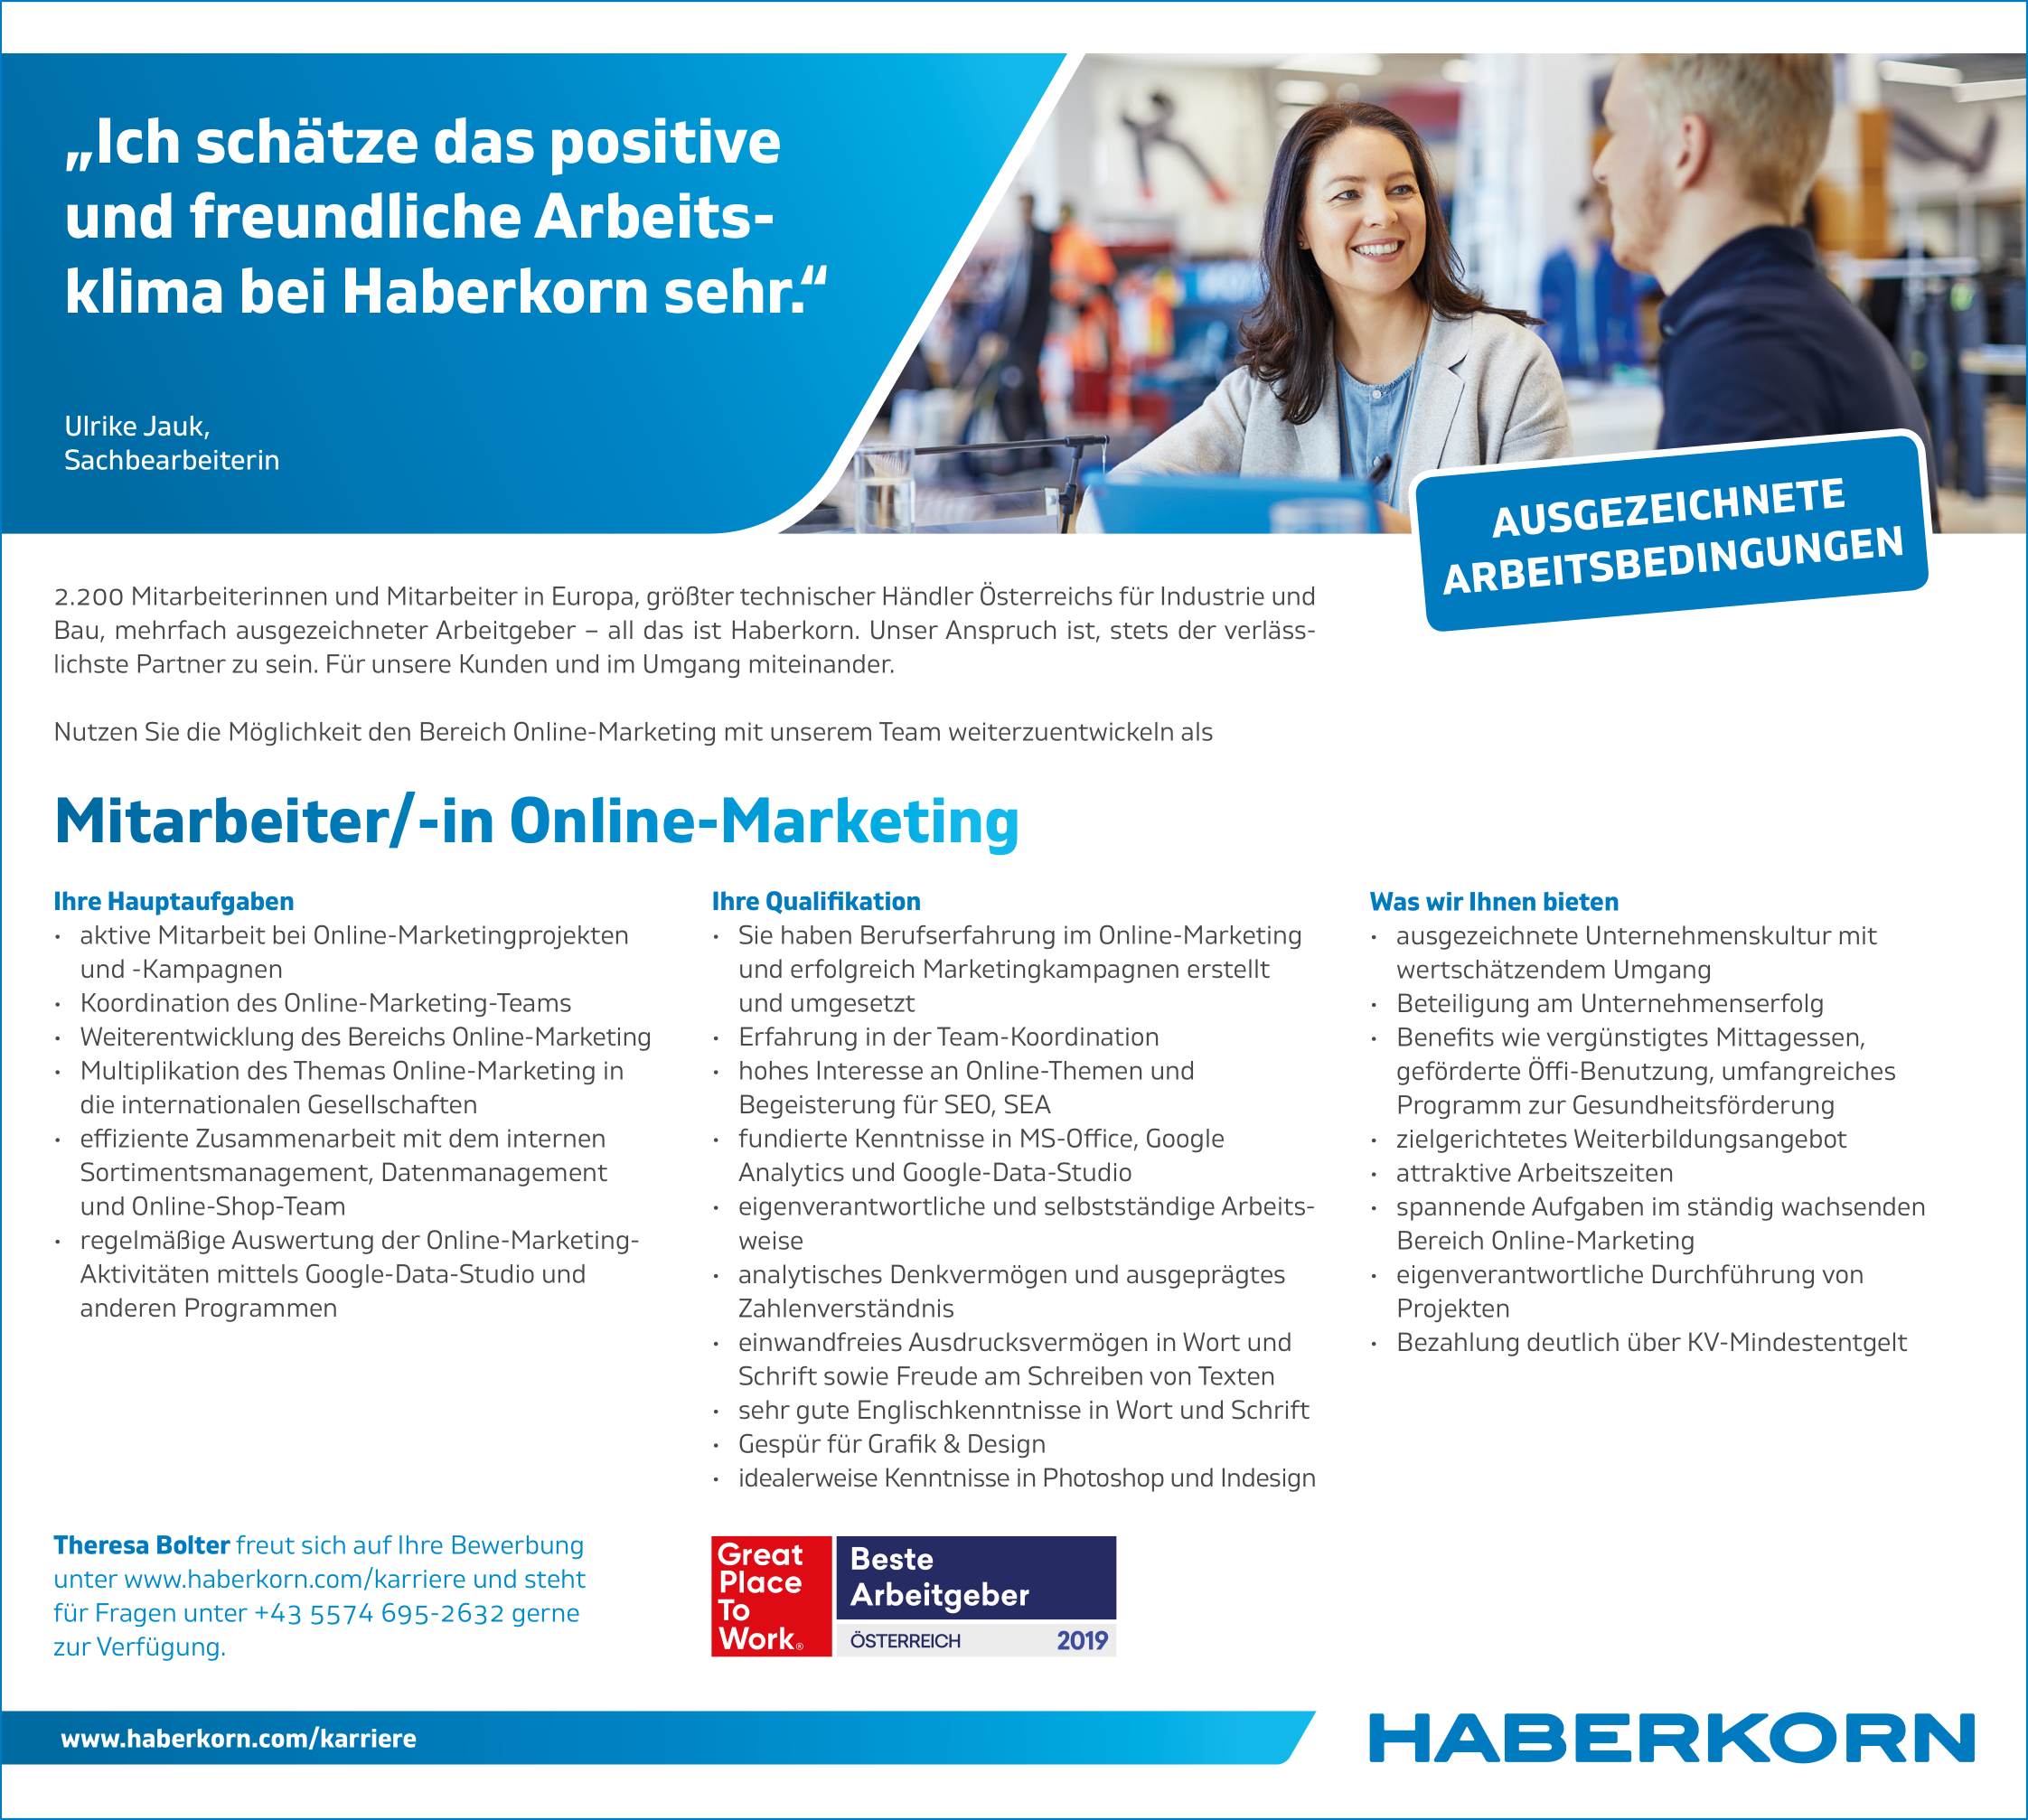 Mitarbeiter/in Online-Marketing